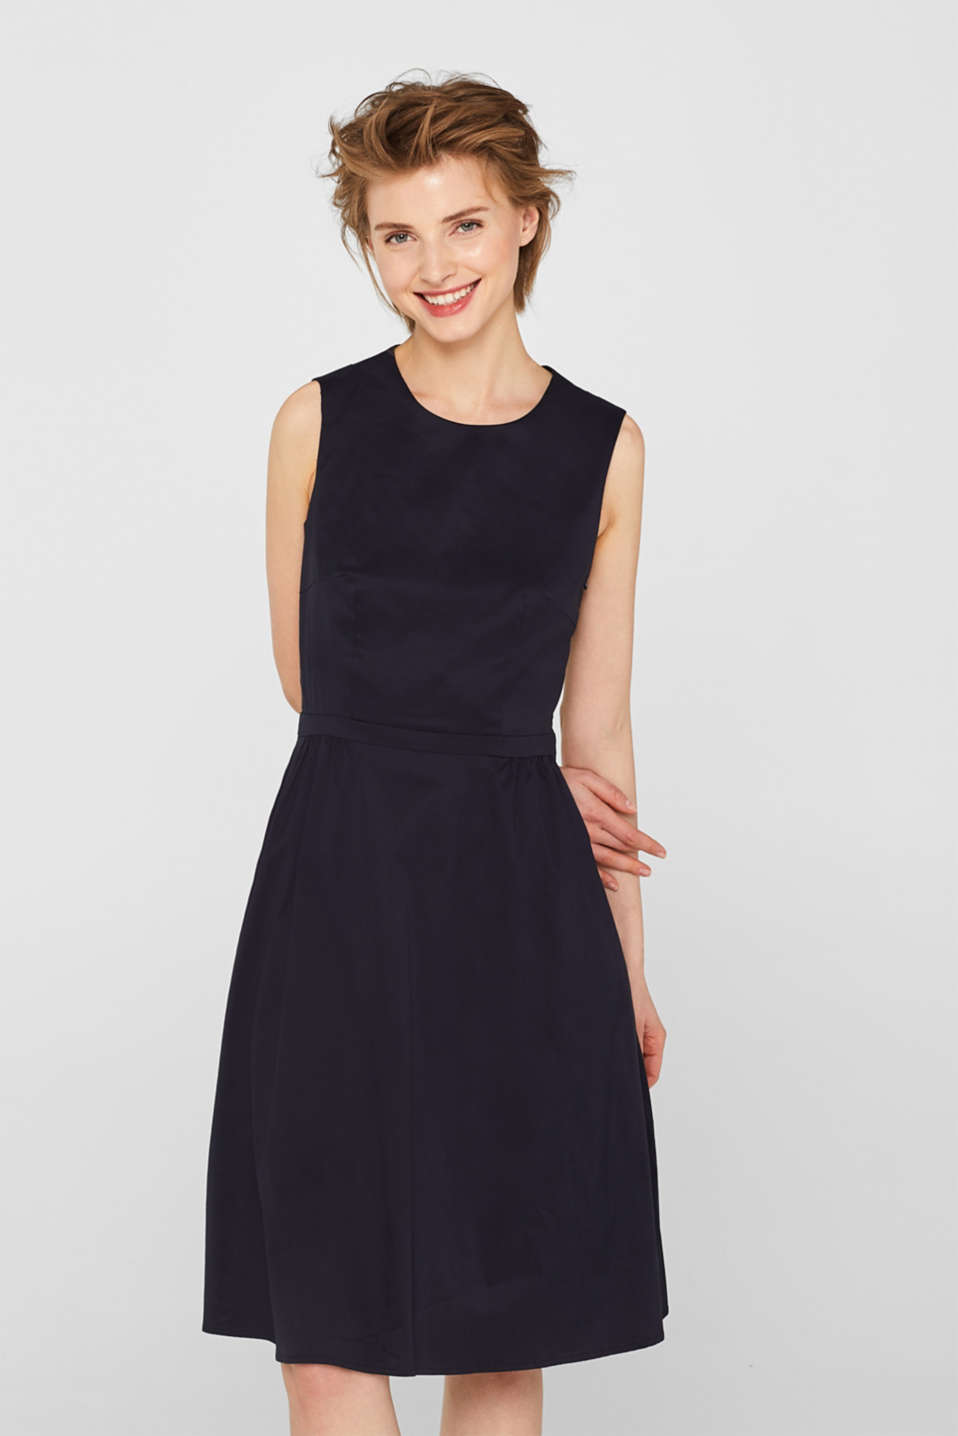 Esprit - Poplin dress with a sophisticated back